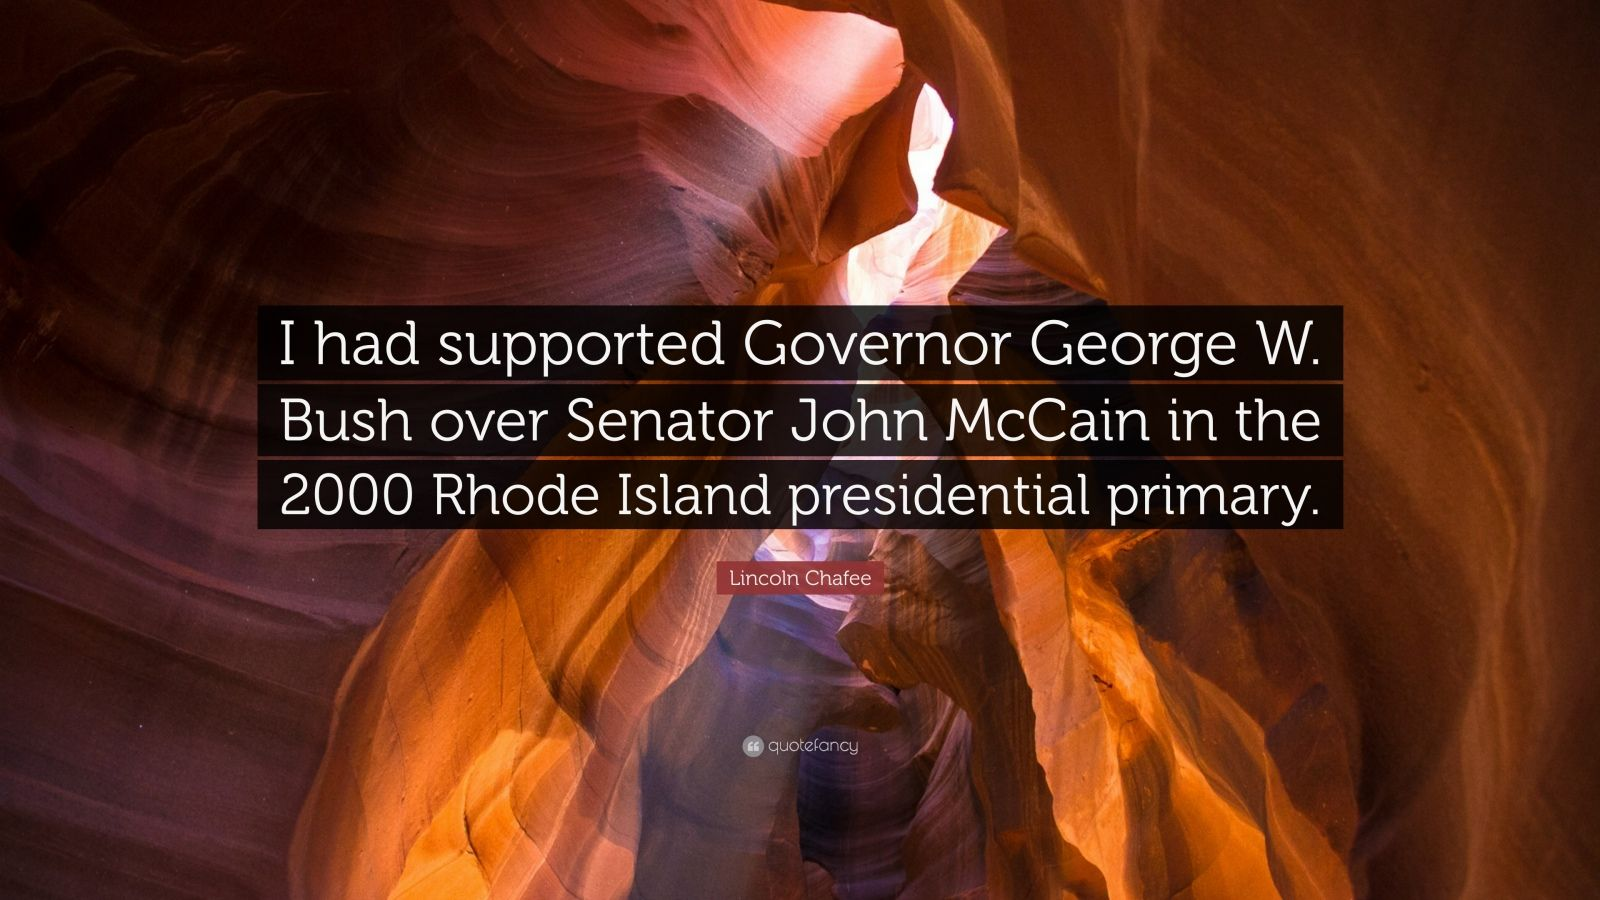 """Lincoln Chafee Quote: """"I had supported Governor George W. Bush over Senator John McCain in the 2000 Rhode Island presidential primary."""""""